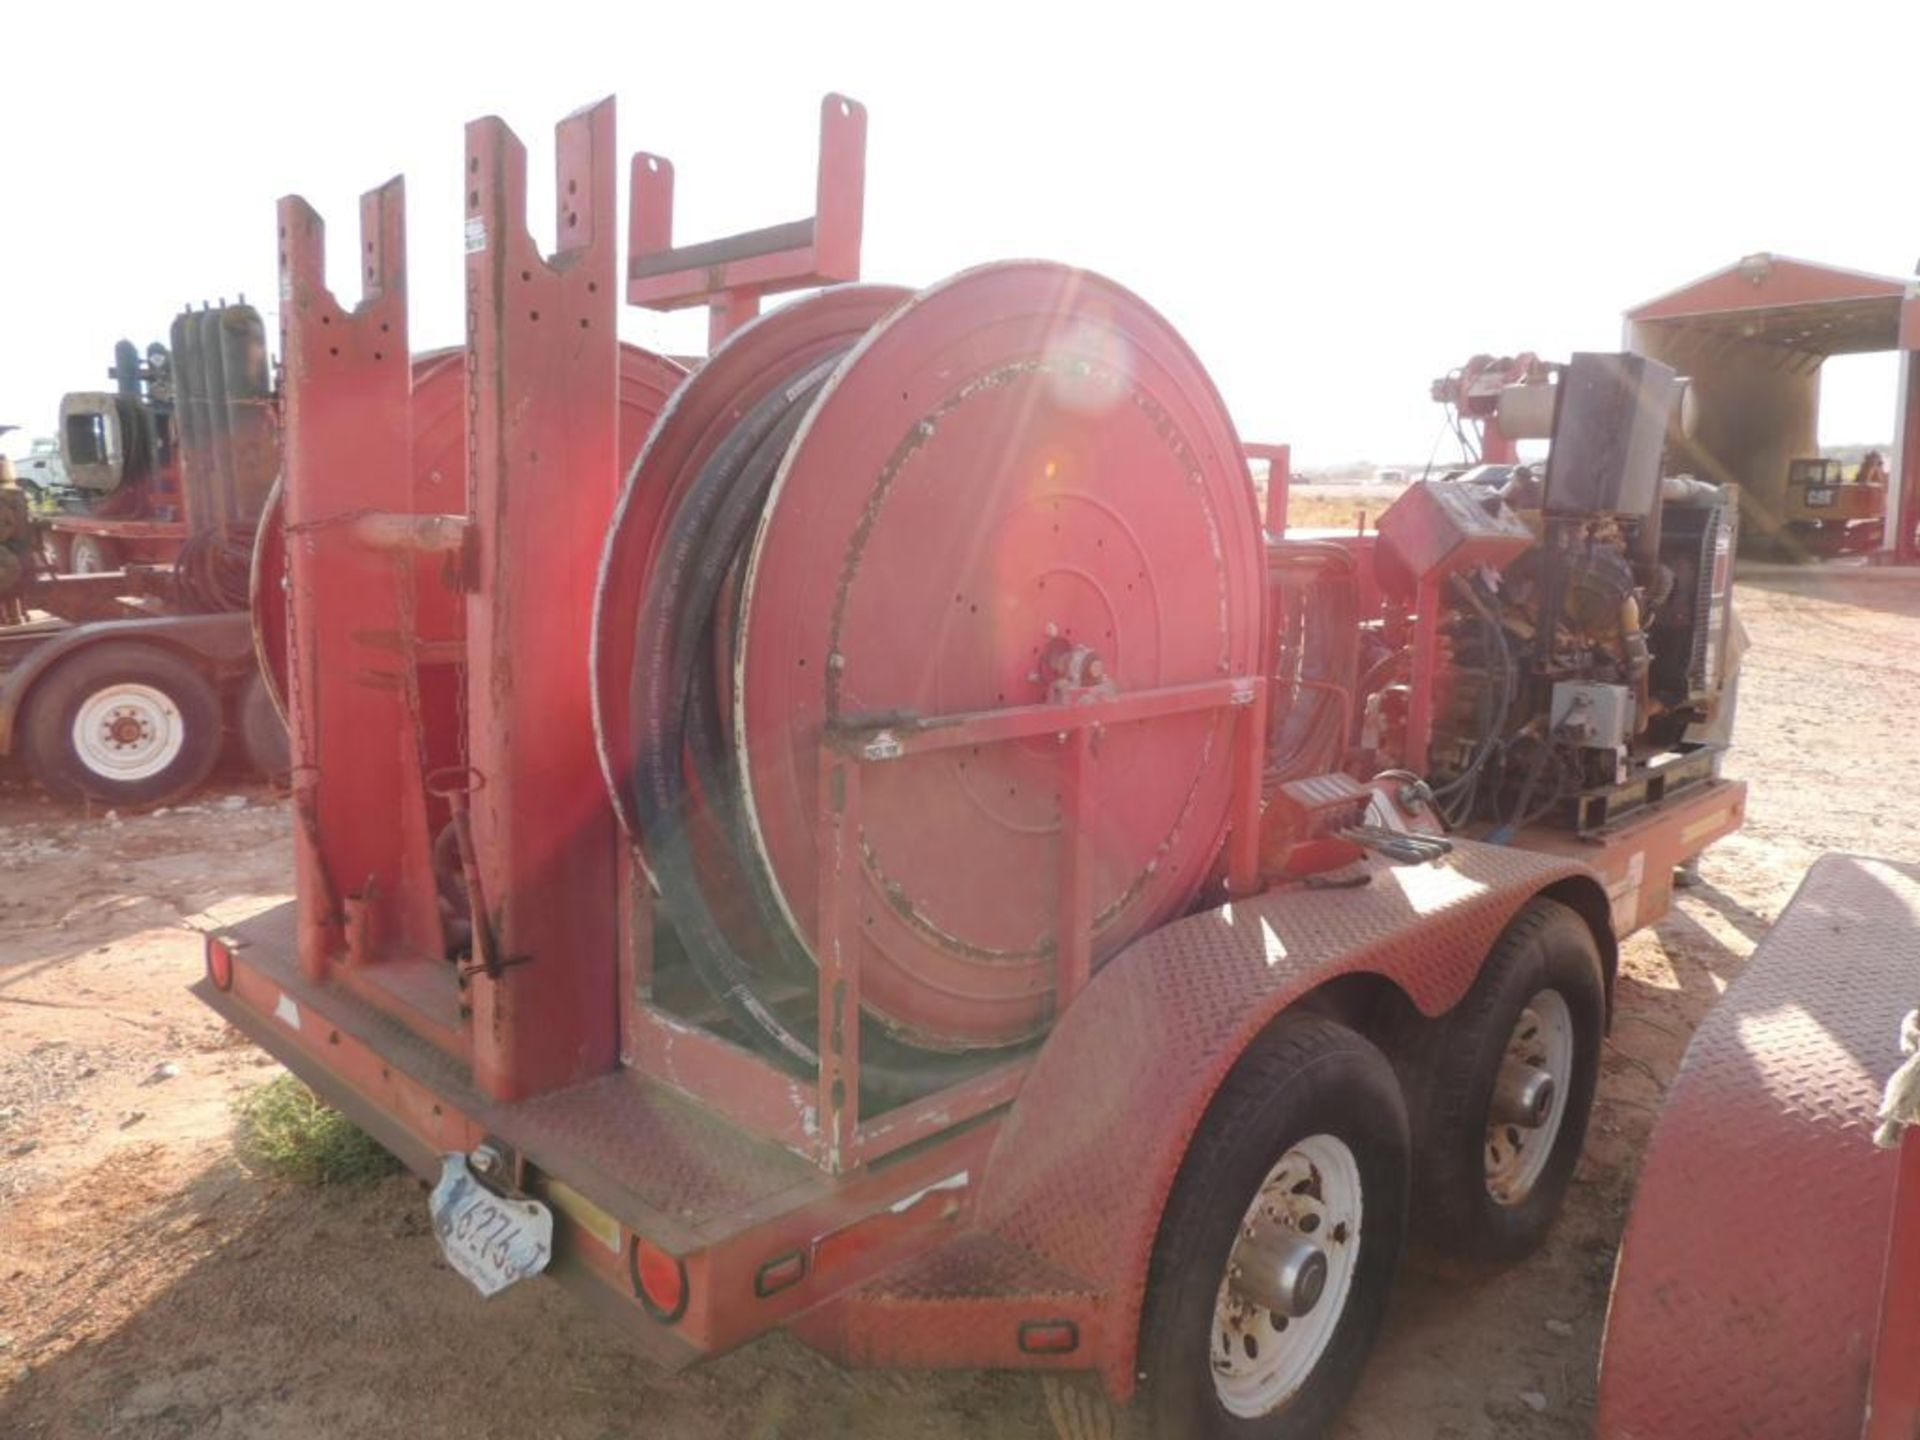 Power Swivel Trailer 2012 Springer Trailer 6 Ft. x 14 Ft. T/A, w/ King Oil Tools 3PS Rotary Drive - Image 4 of 5